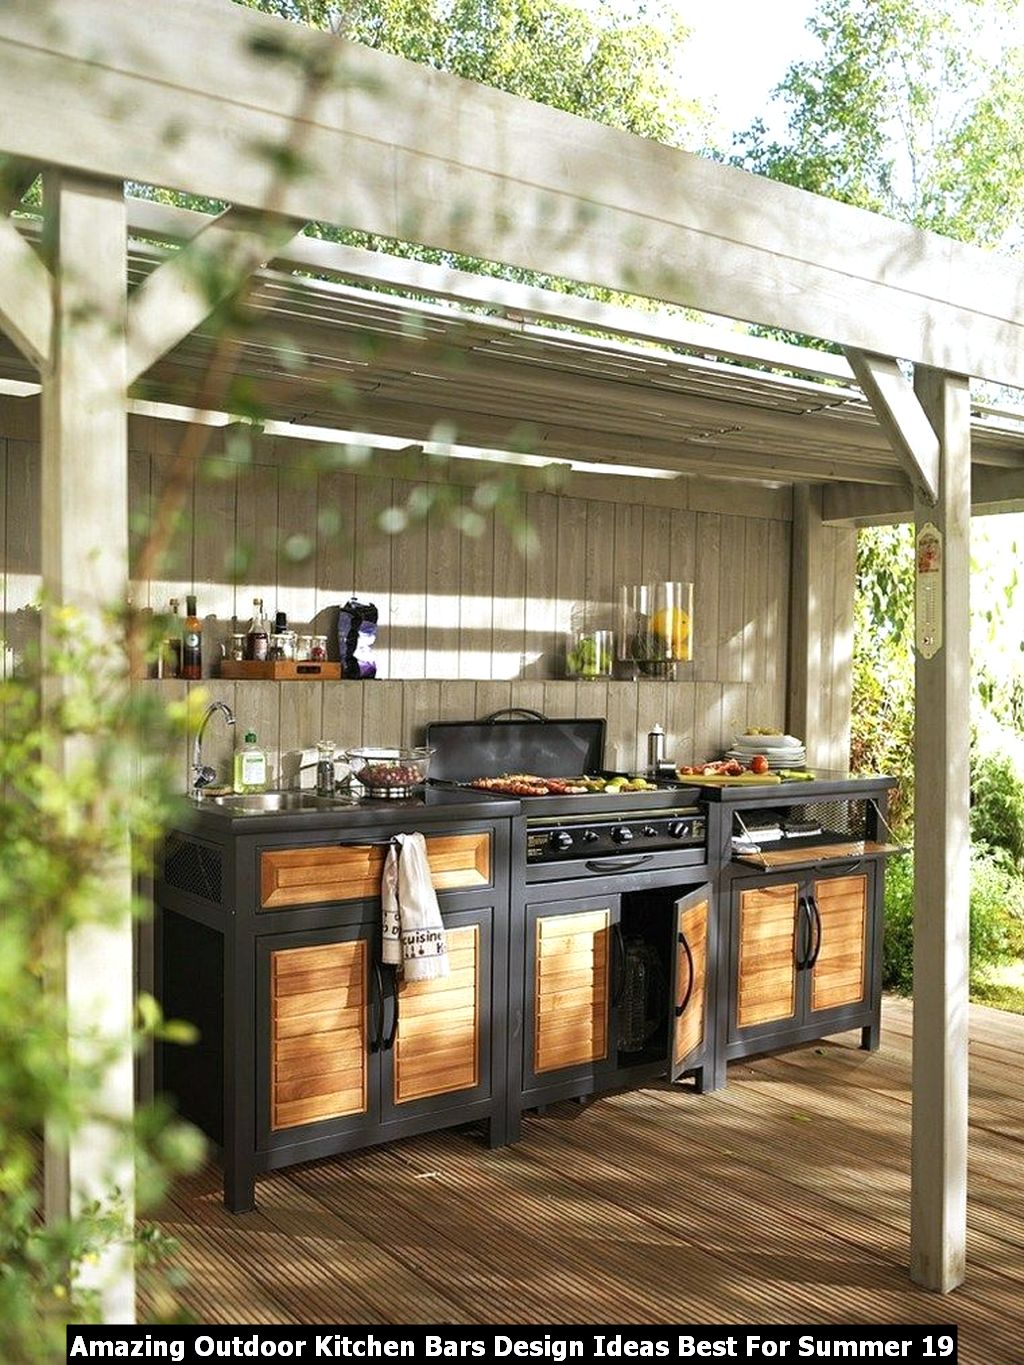 Amazing Outdoor Kitchen Bars Design Ideas Best For Summer 19